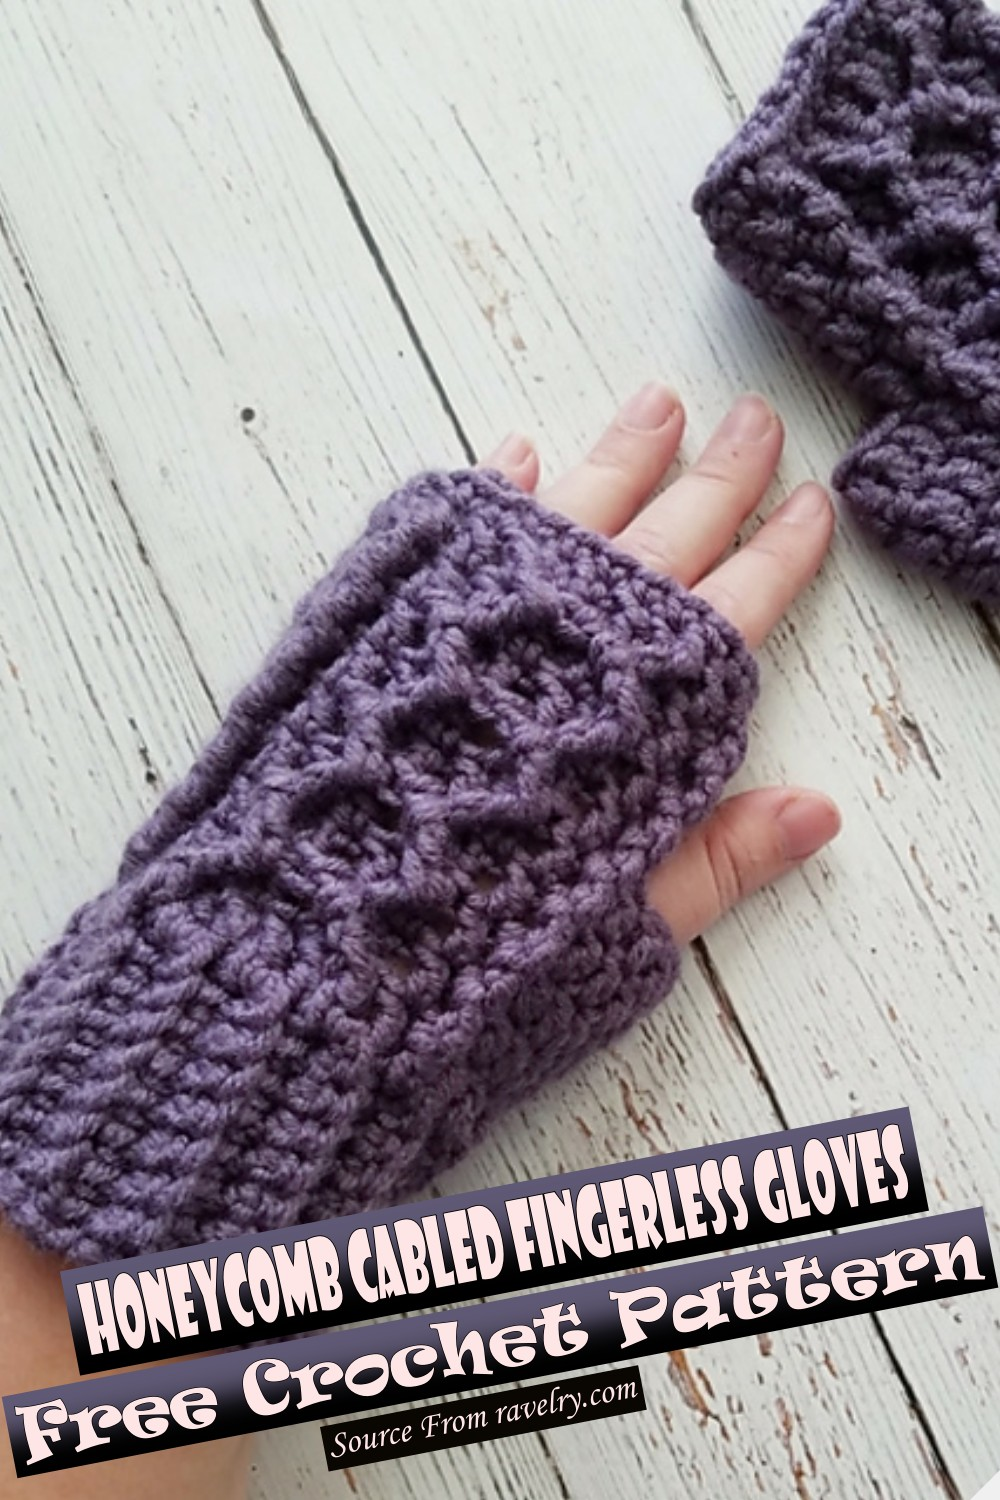 Free Crochet Honeycomb Cabled Fingerless Gloves Pattern